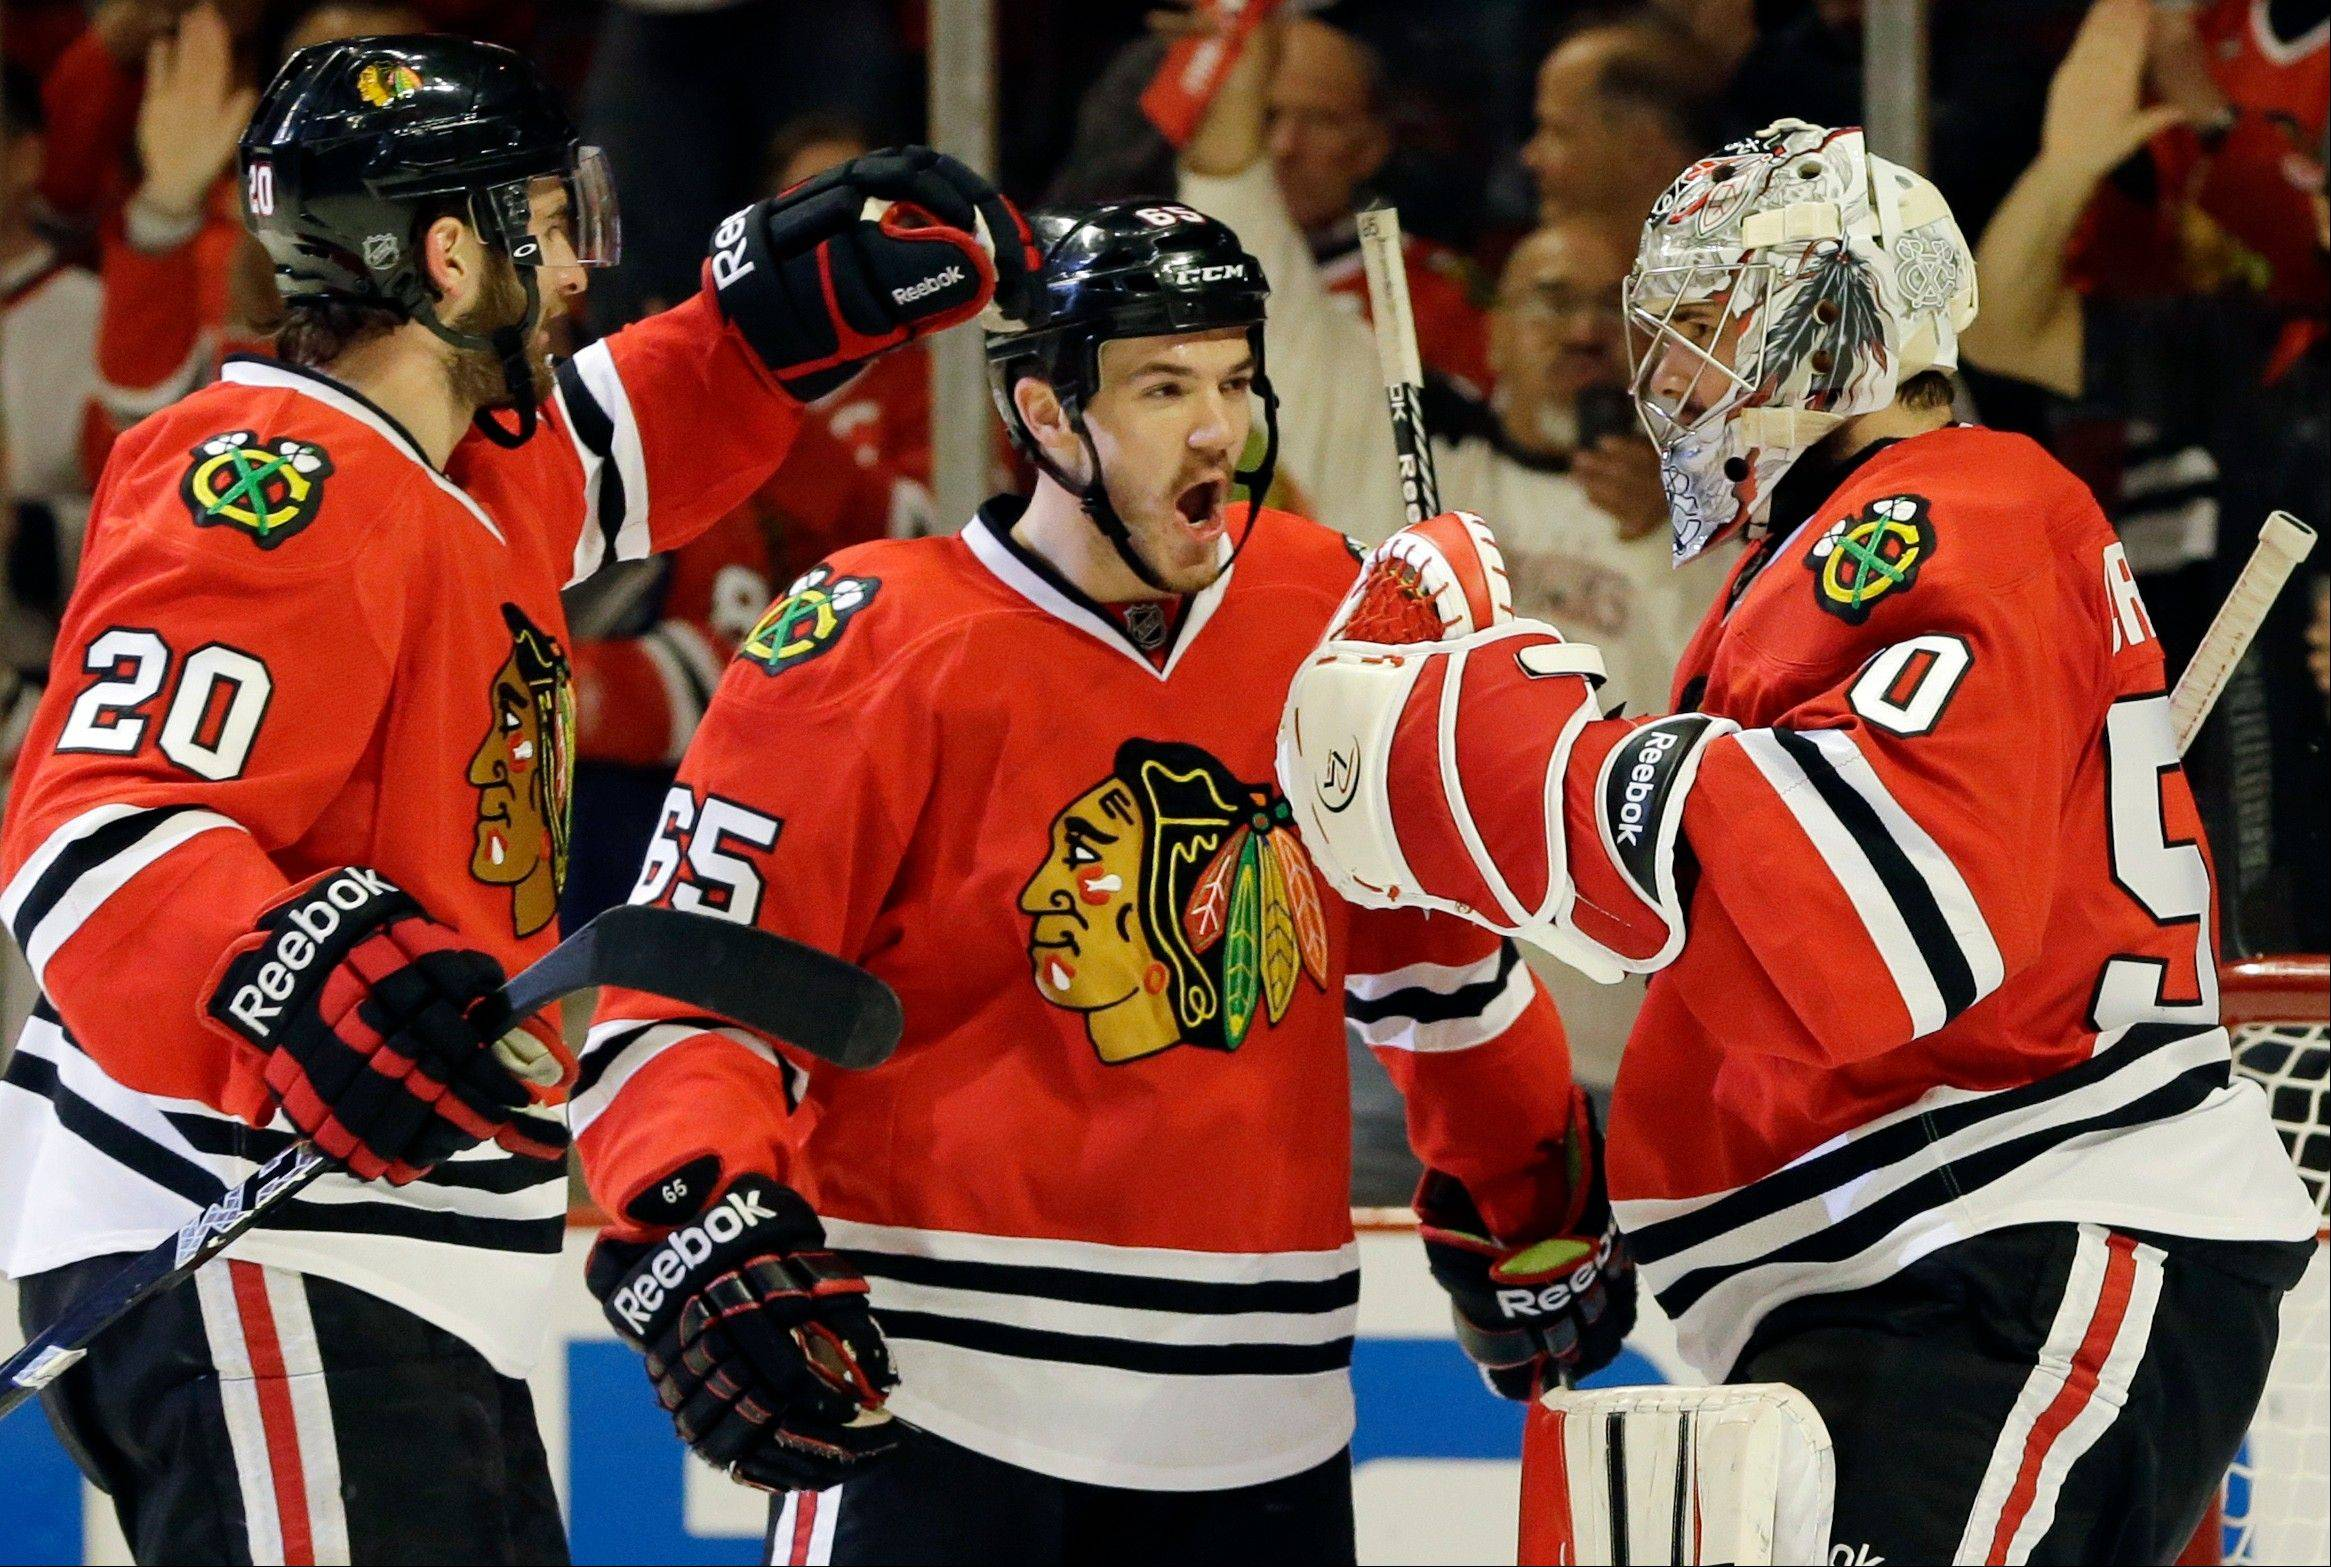 Blackhawks goalie Corey Crawford, right, celebrates with teammates Andrew Shaw, center, and Brandon Saad defeating the Detroit Red Wings 4-1 in Game 5 of the NHL Stanley Cup playoffs Western Conference semifinals Saturday night at the United Center.